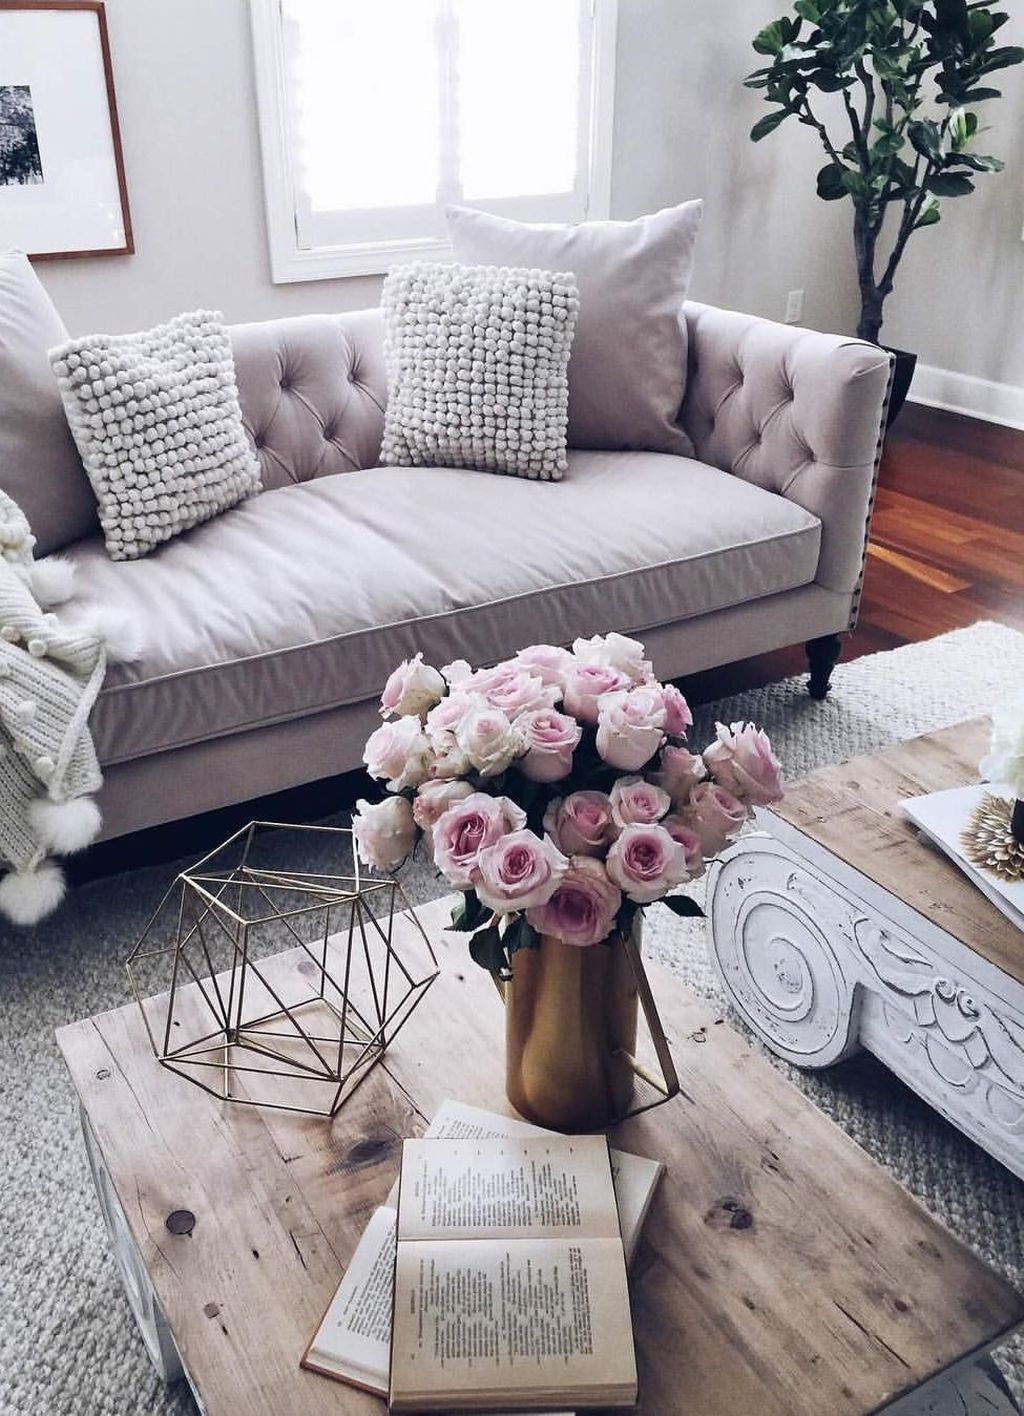 apartment living room decorating ideas on a budget. Cool 46 Magnificient Apartment Living Room Decorating Ideas On A Budget  More At Https